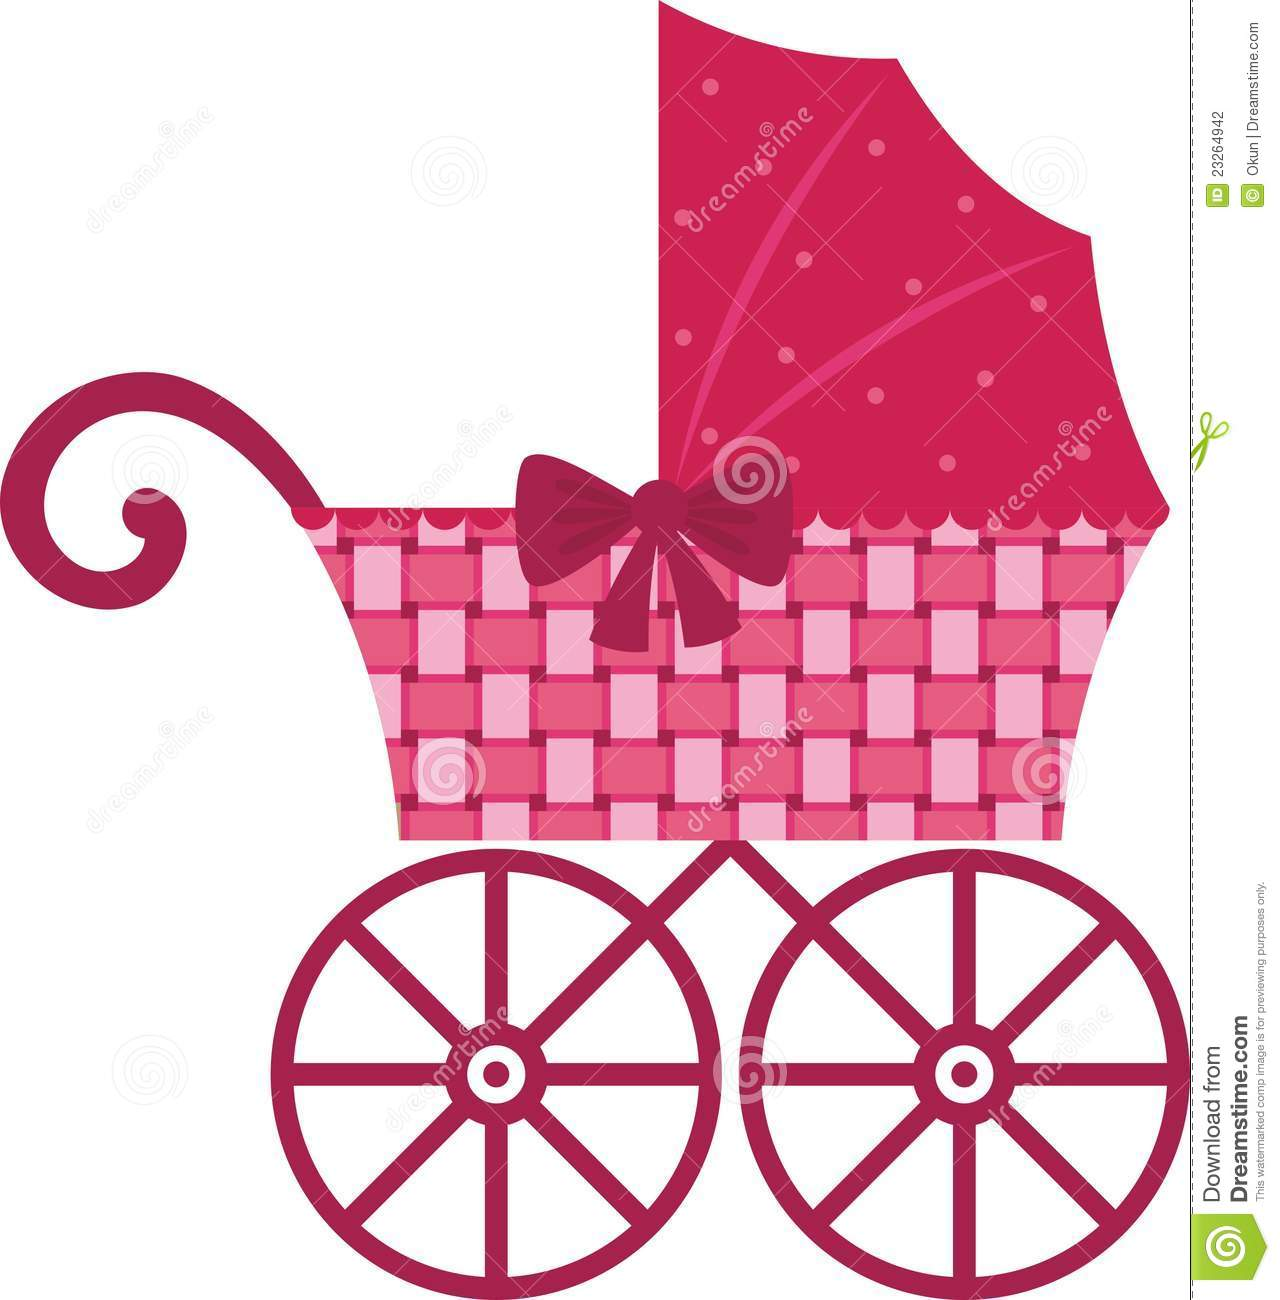 9ce78c2a7 Pink Pram stock vector. Illustration of wheel